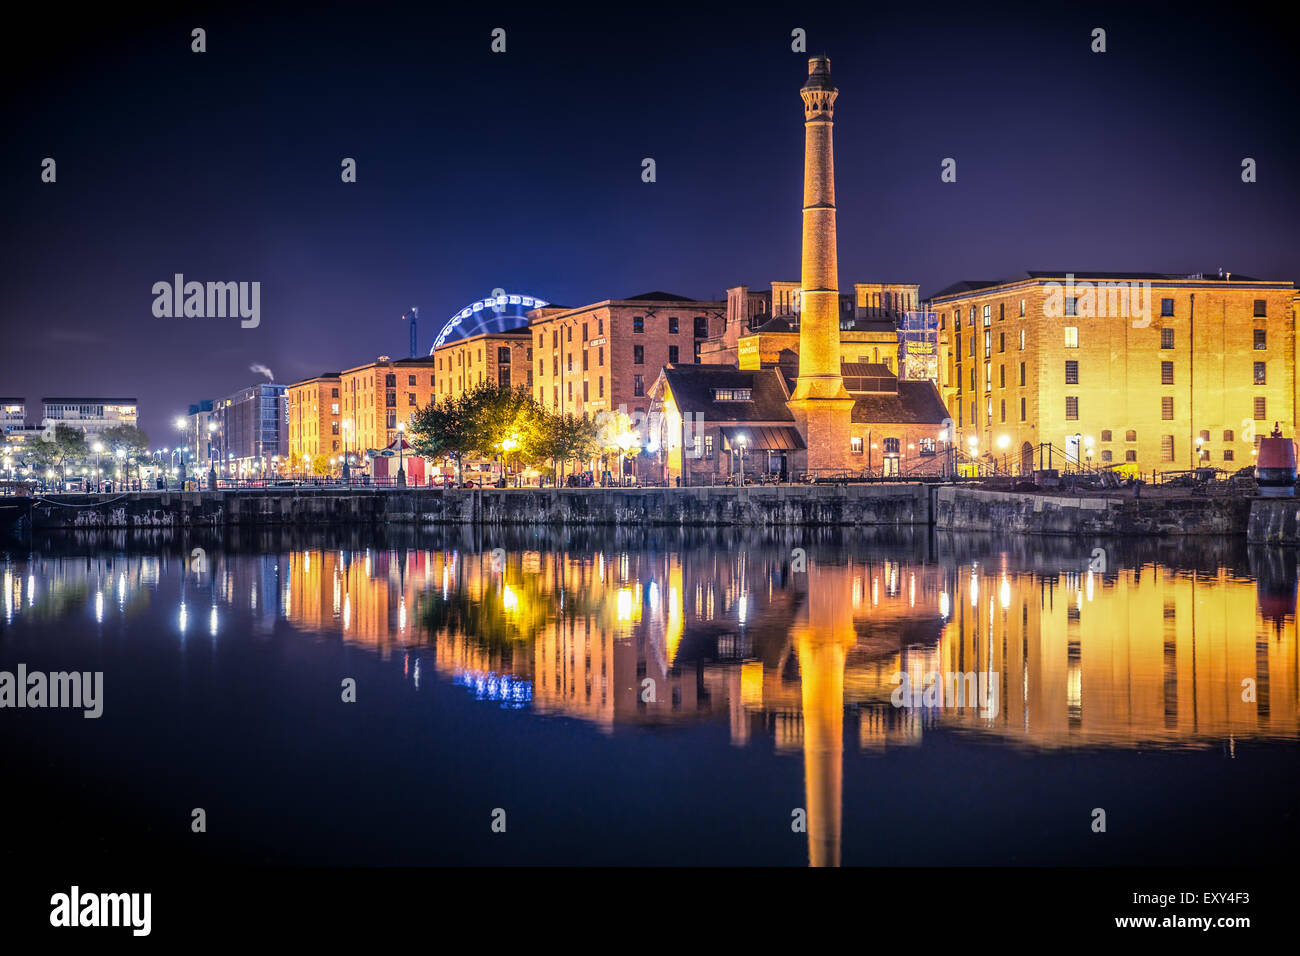 Liverpool Royaume-Uni waterfront skyline at night Photo Stock